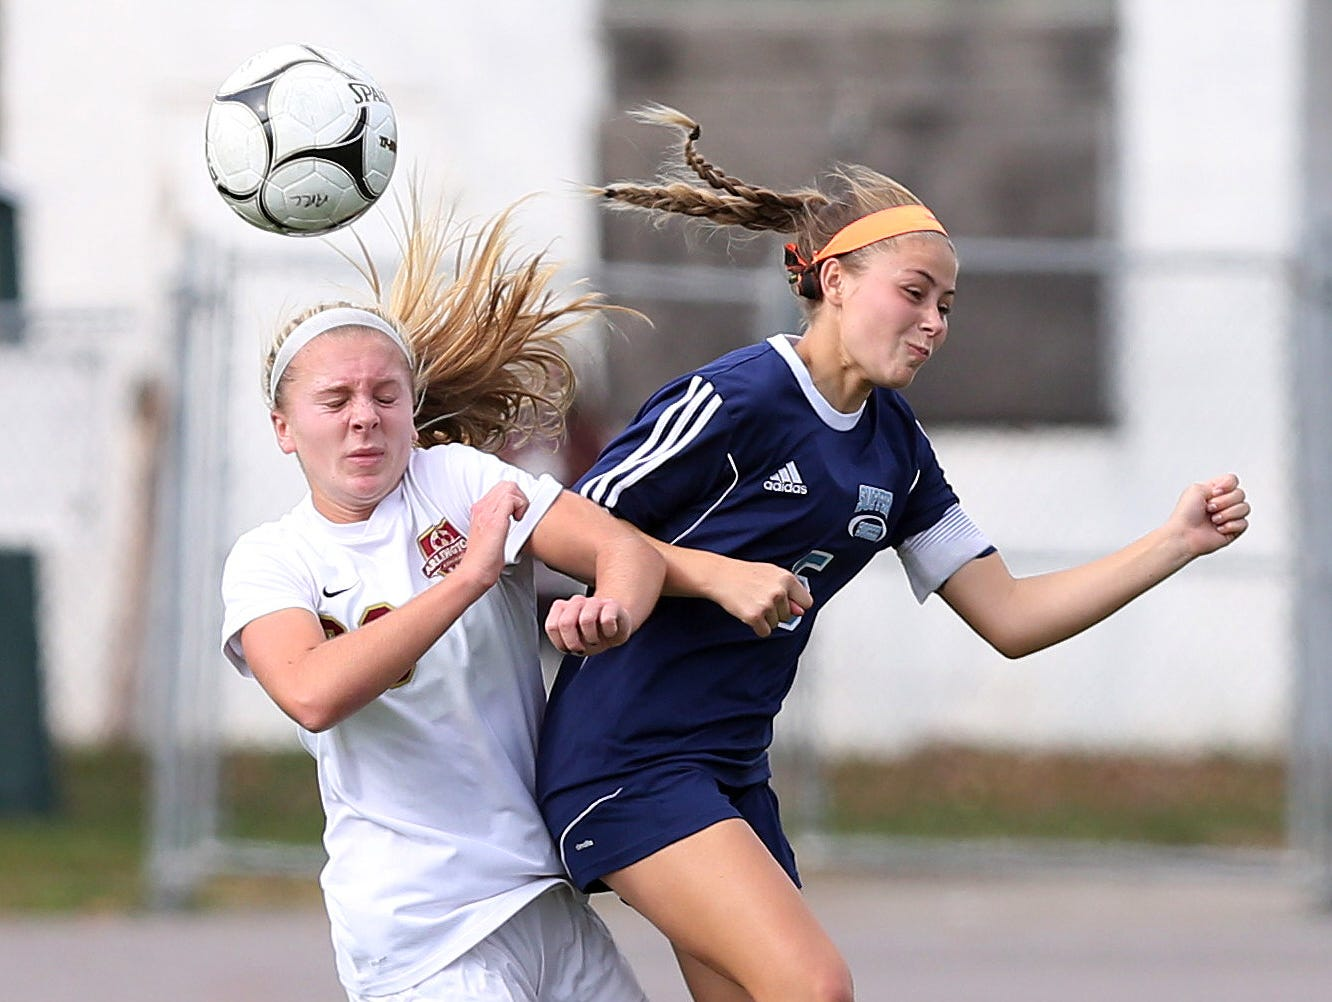 From left, Arlington's Molly Feign (29) and Suffern's Abby Bosco (5) battle for ball control during the girls soccer Section 1 Class AA championship game at Yorktown High School Oct. 30, 2016. Arlington won the game 2-0.